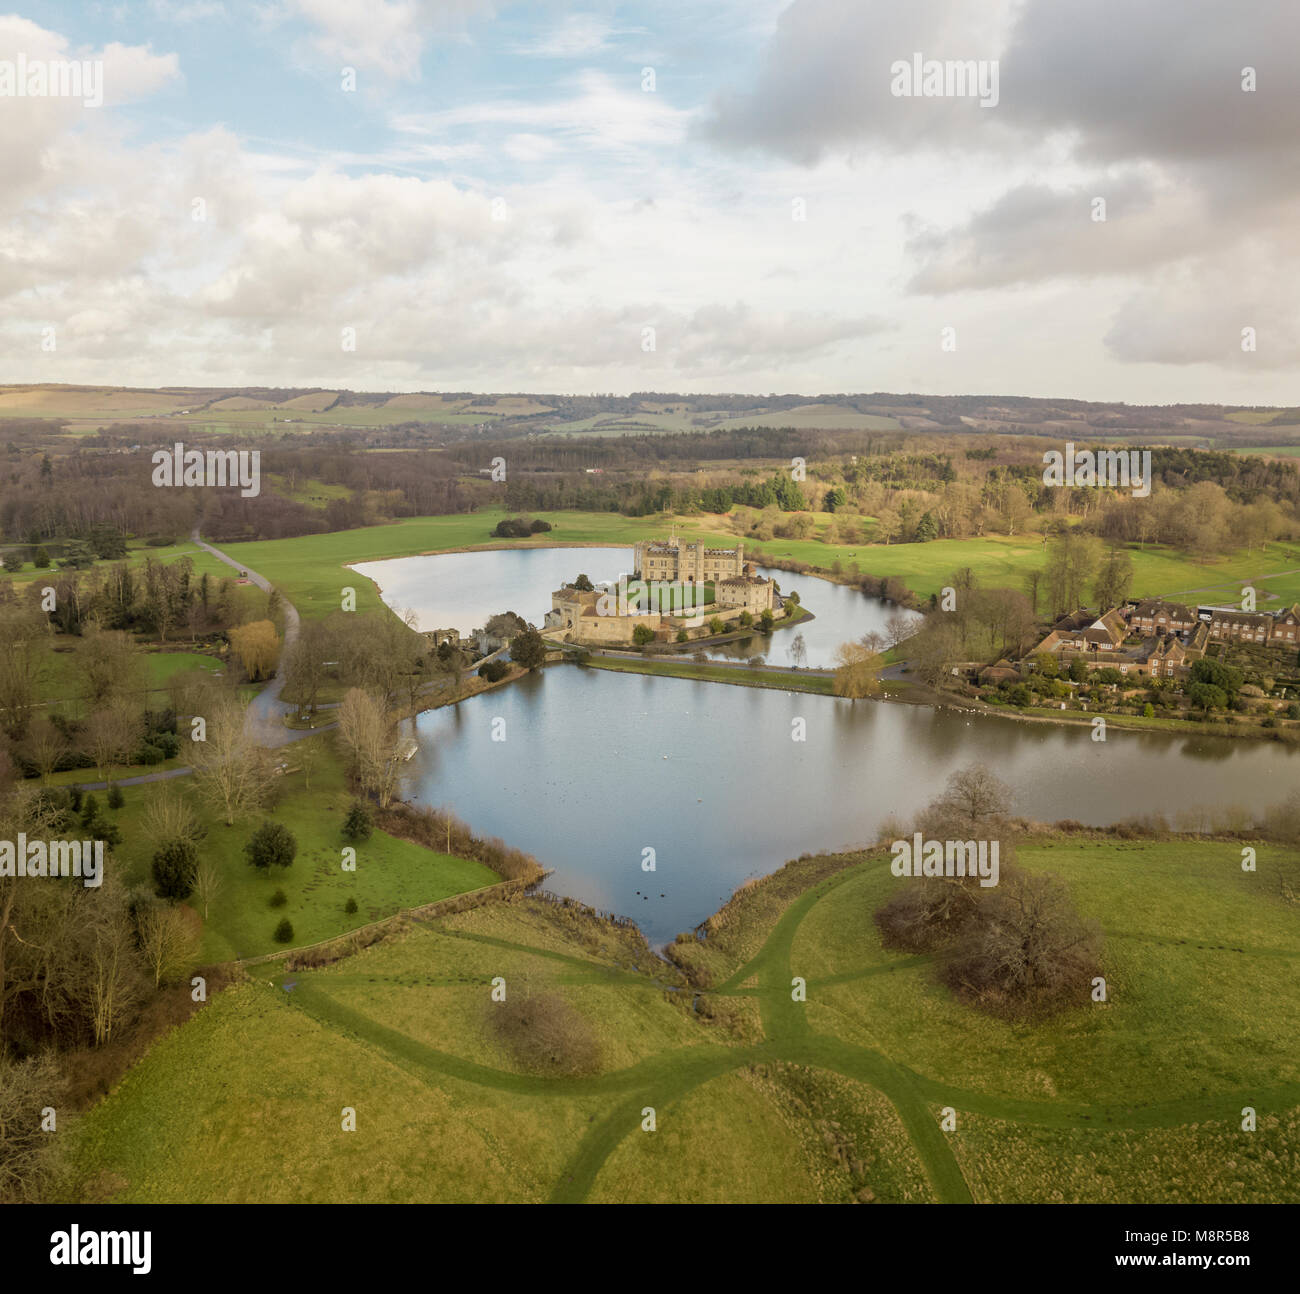 Aerial view of Leeds Castle, in the Weald of Kent, UK Stock Photo